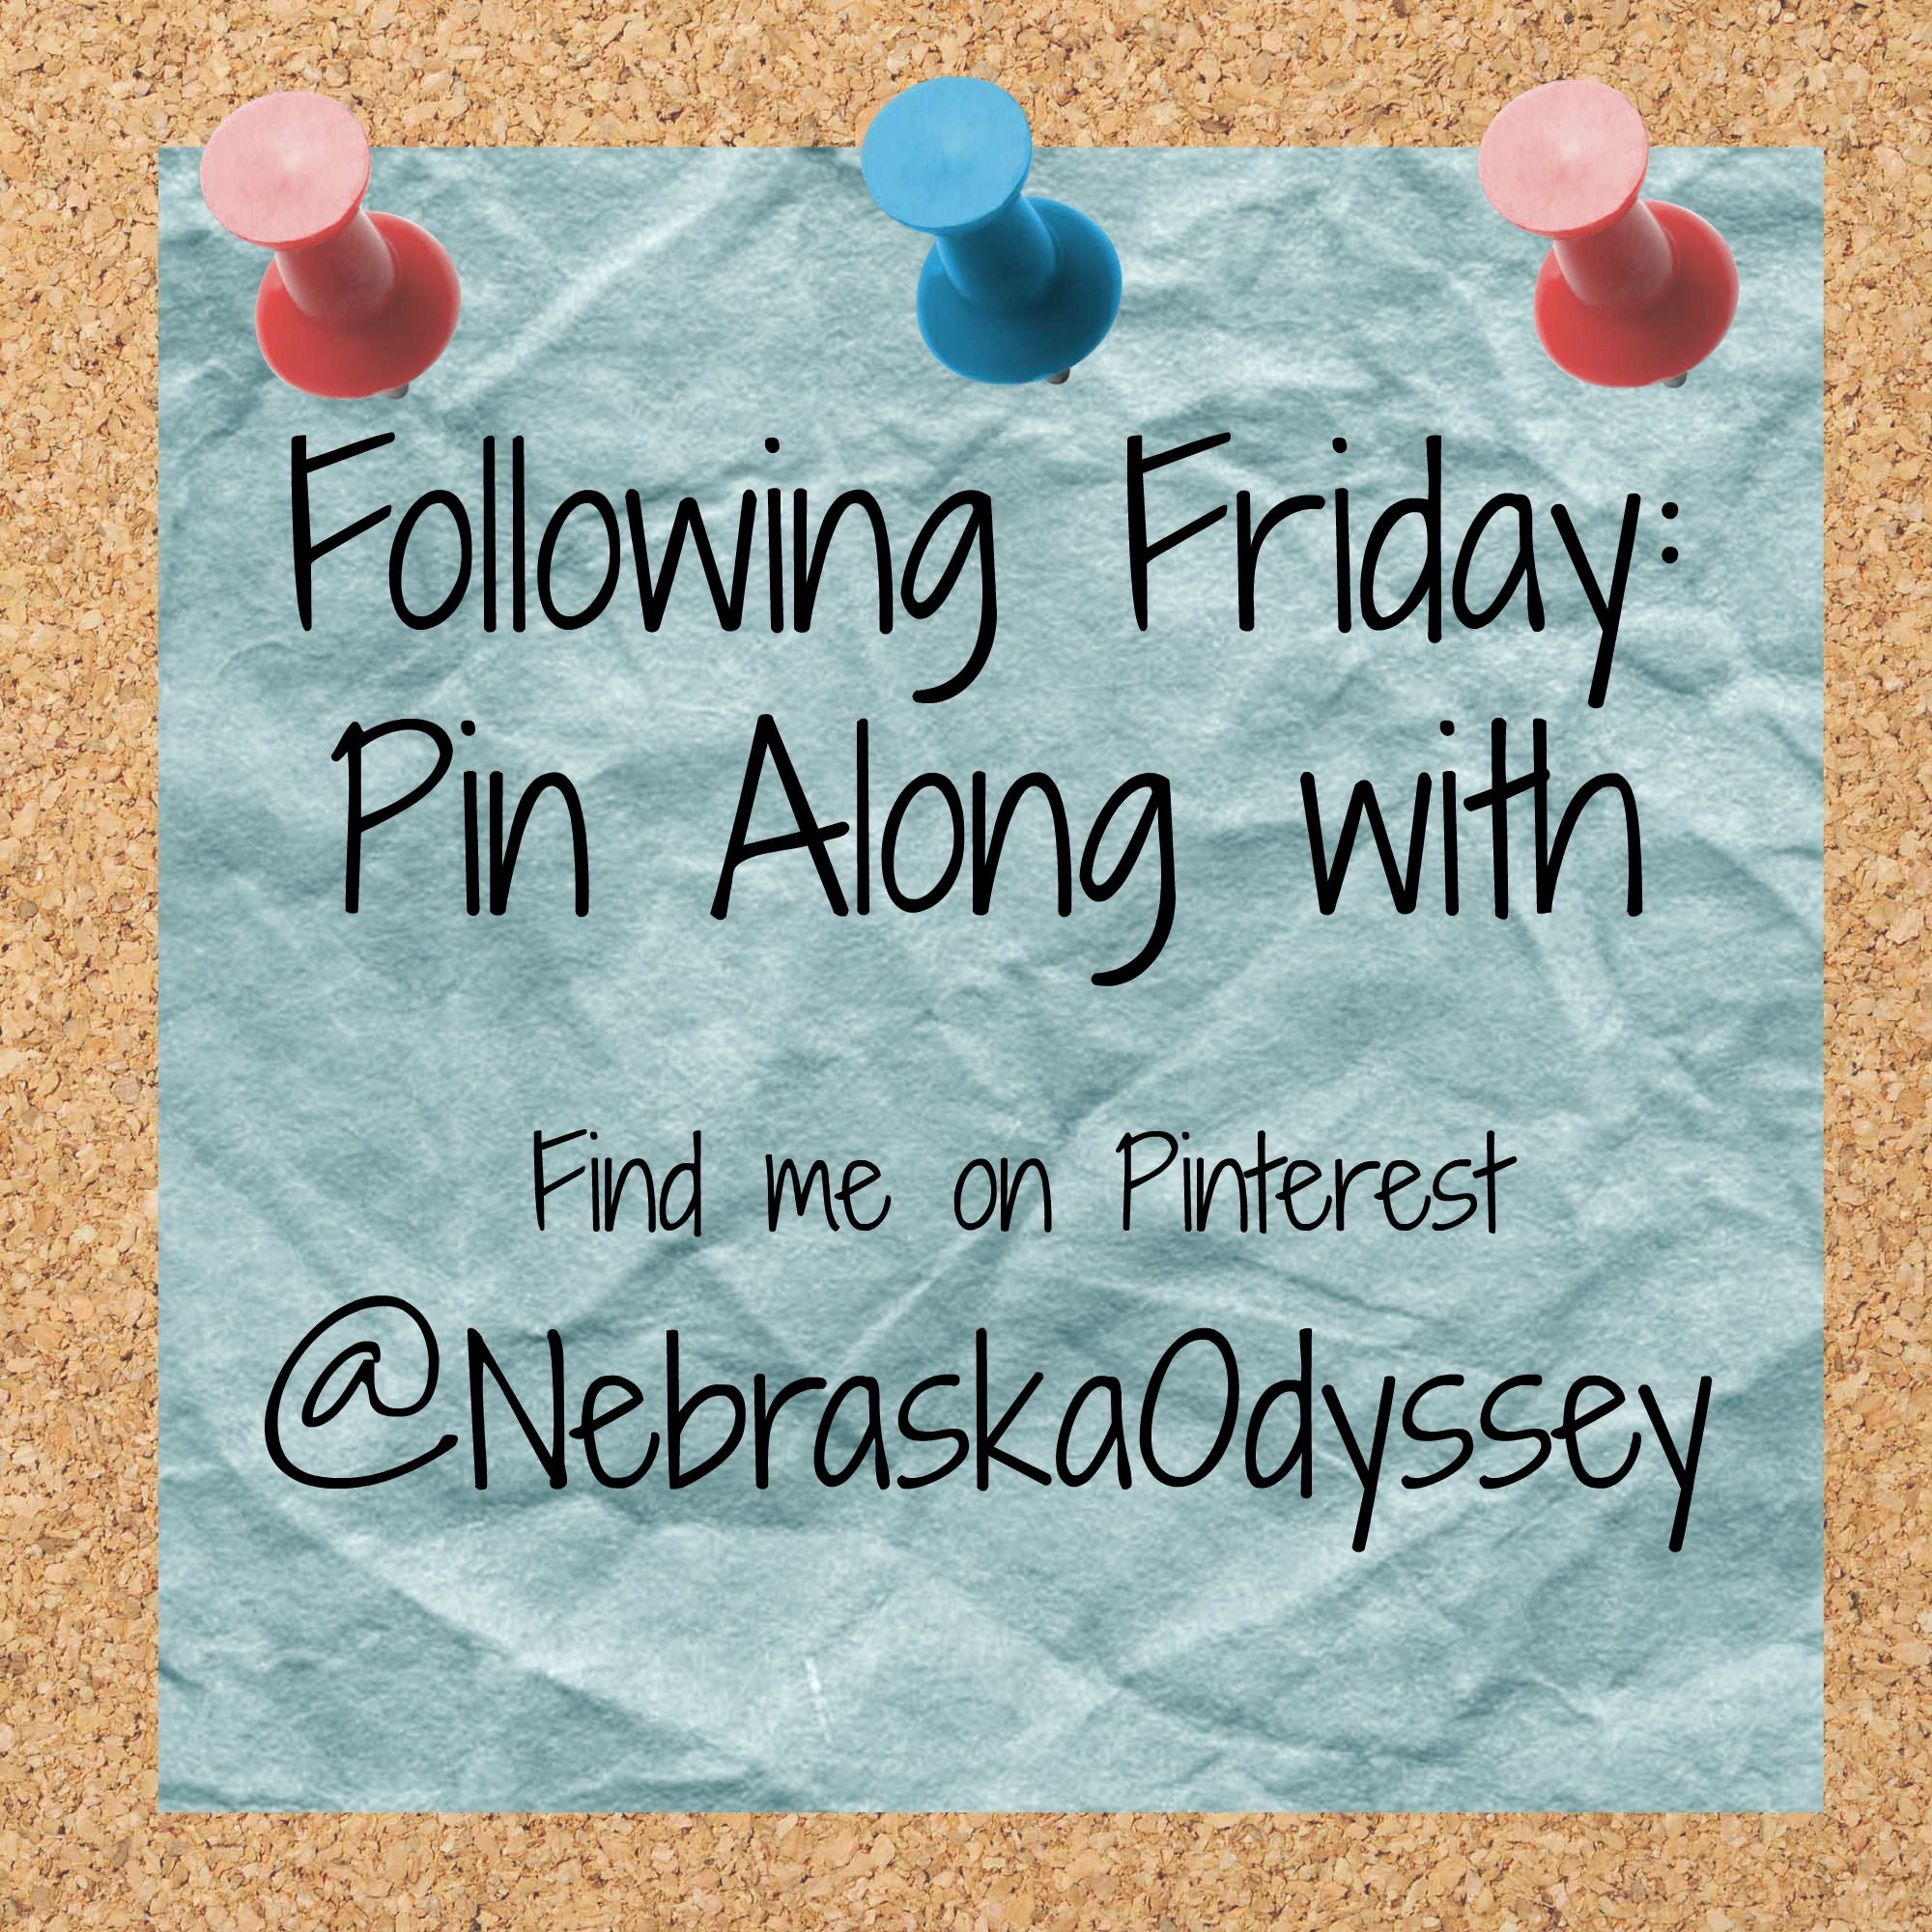 Odyssey Through Nebraska is on Pinterest